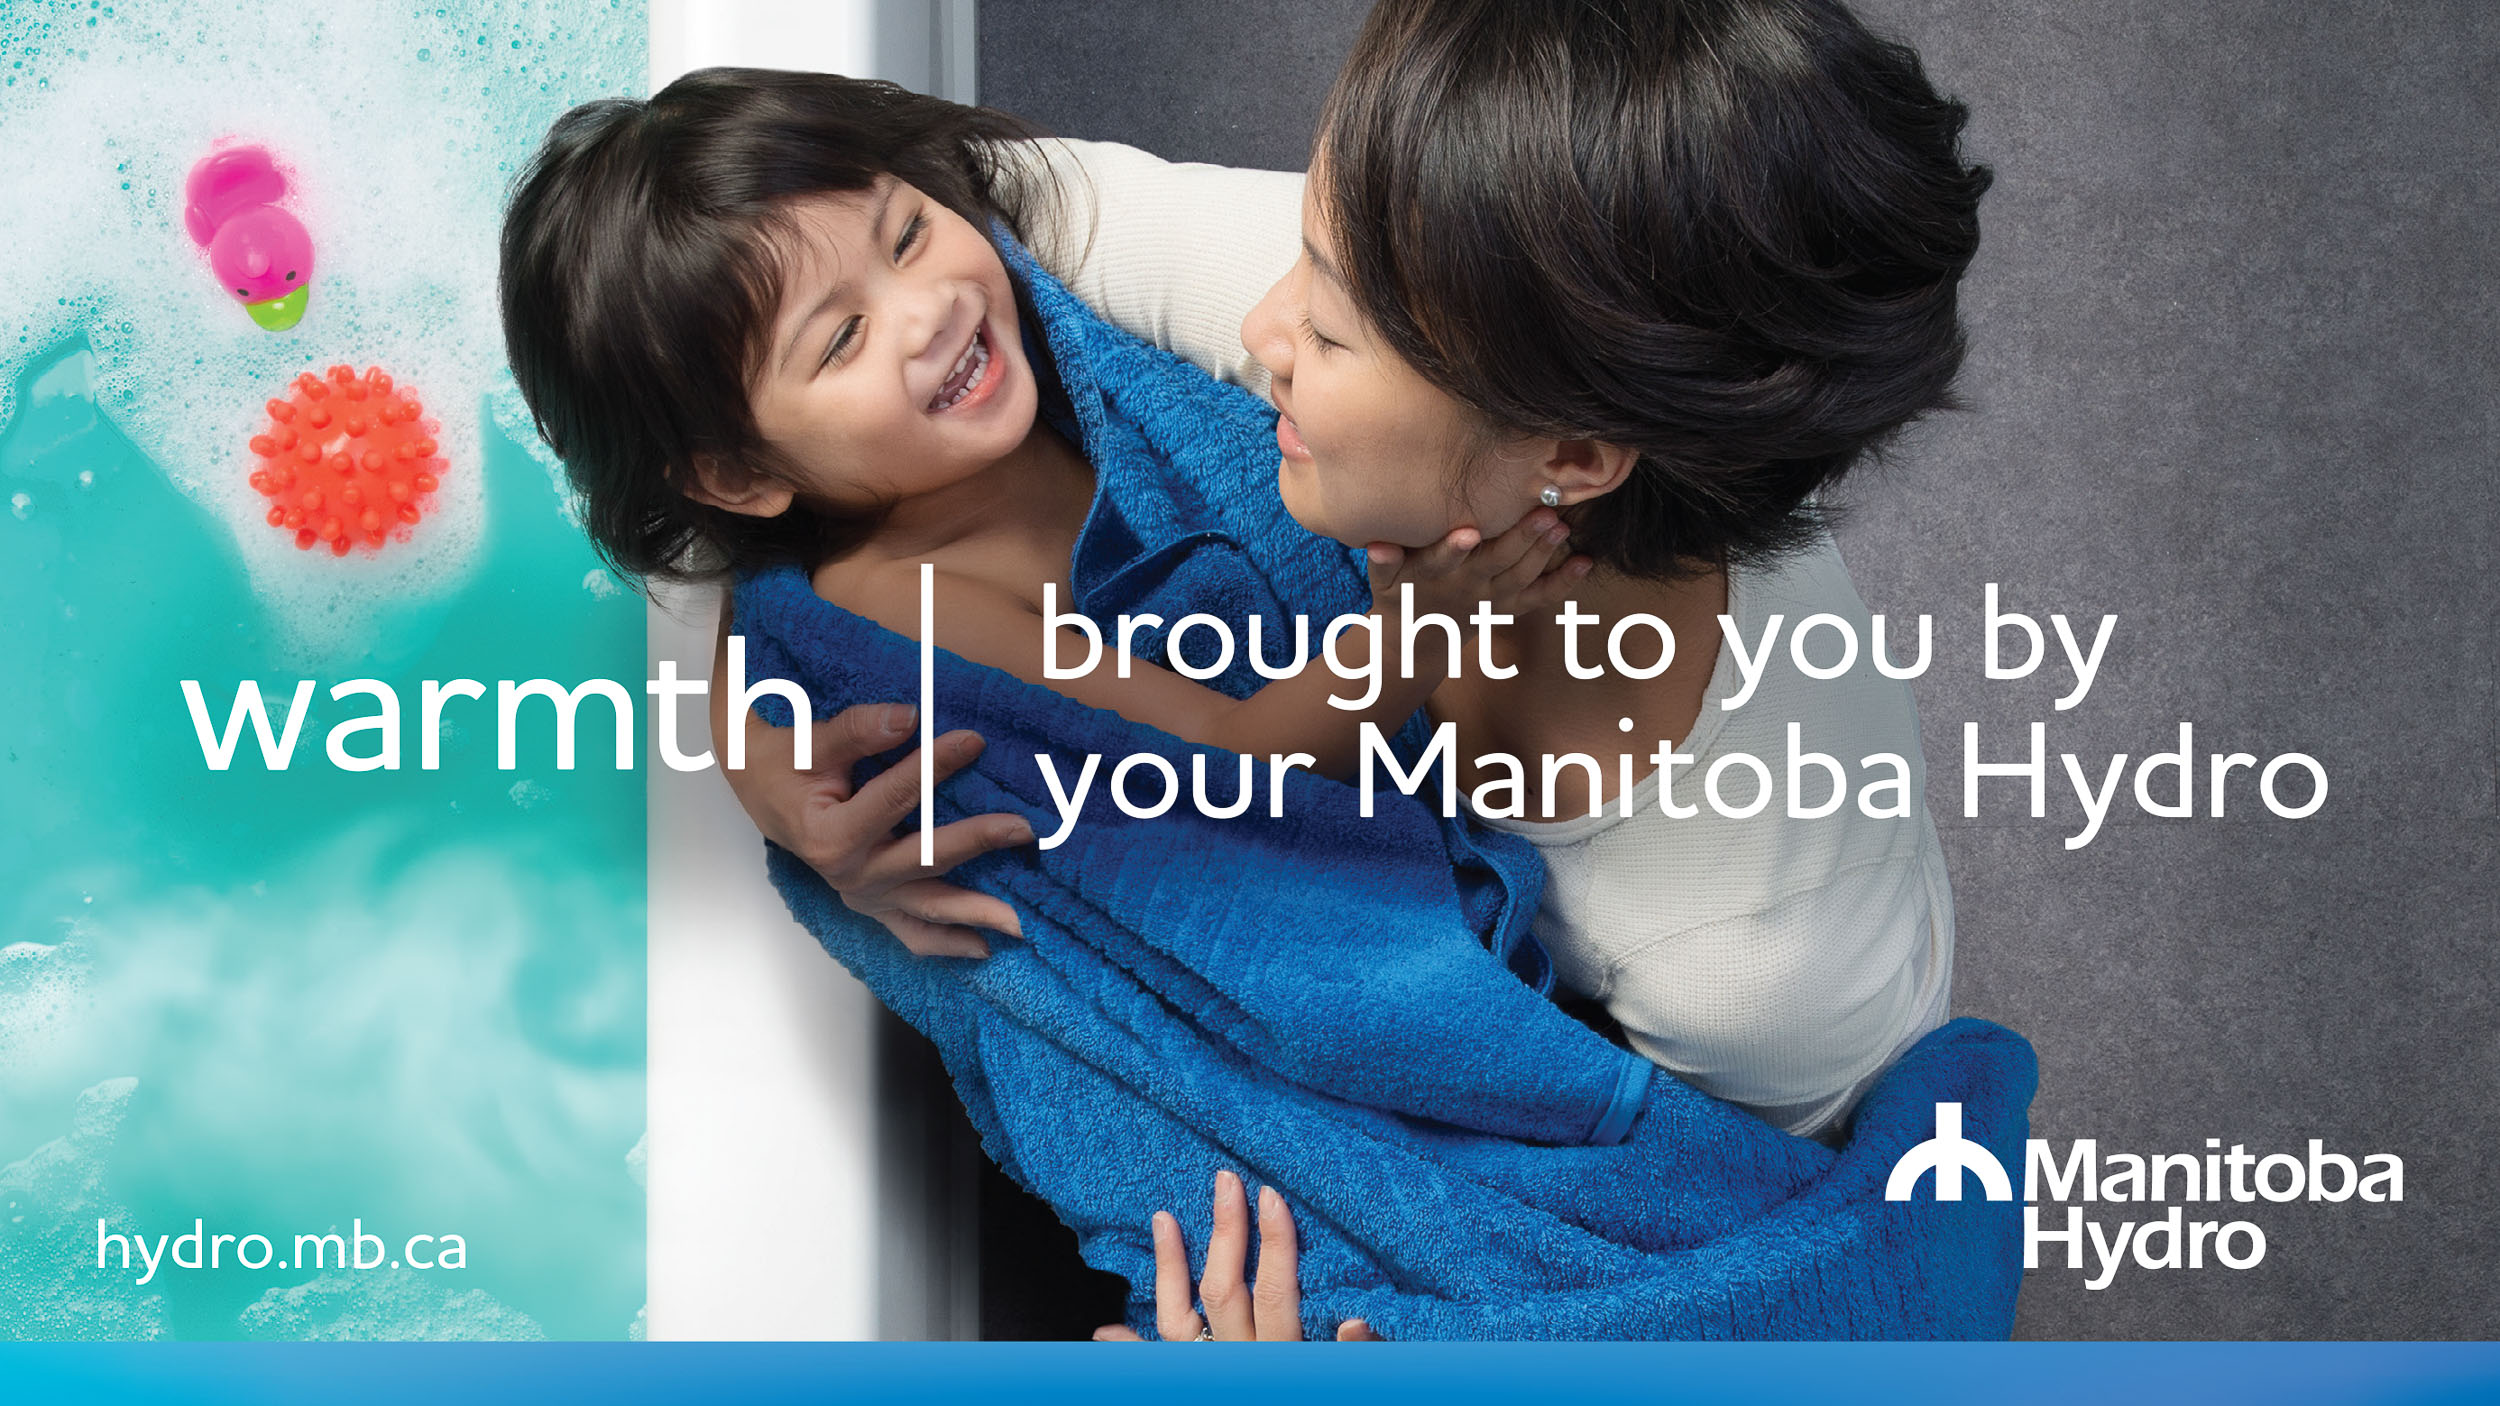 22346 - MHPA - Print Ads - Brought to you by MB Hydro